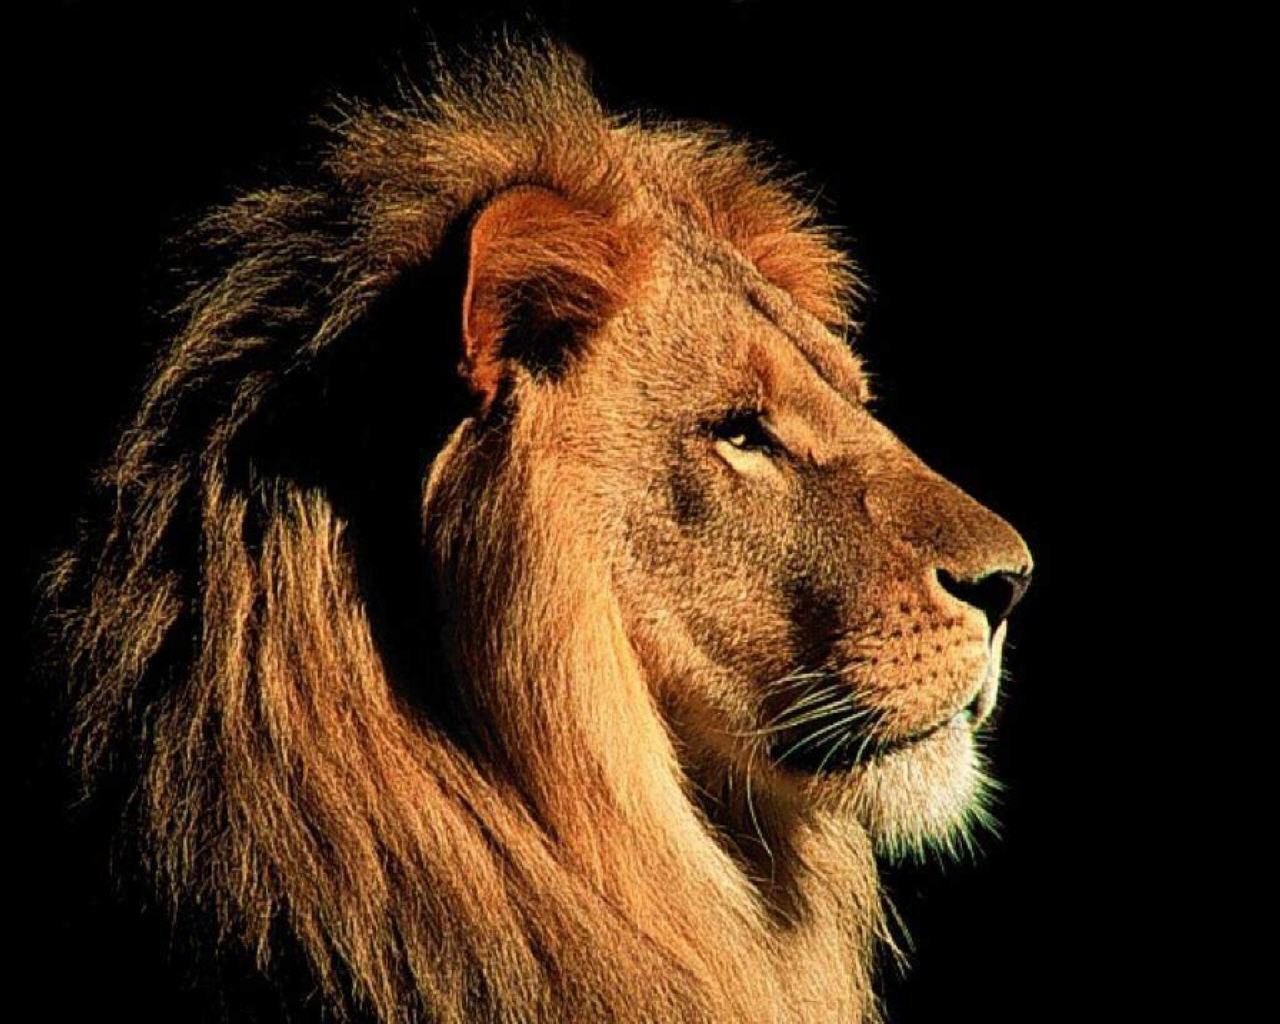 lion wallpaper the best top desktop lion wallpapers hd lion wallpaper 1280x1024